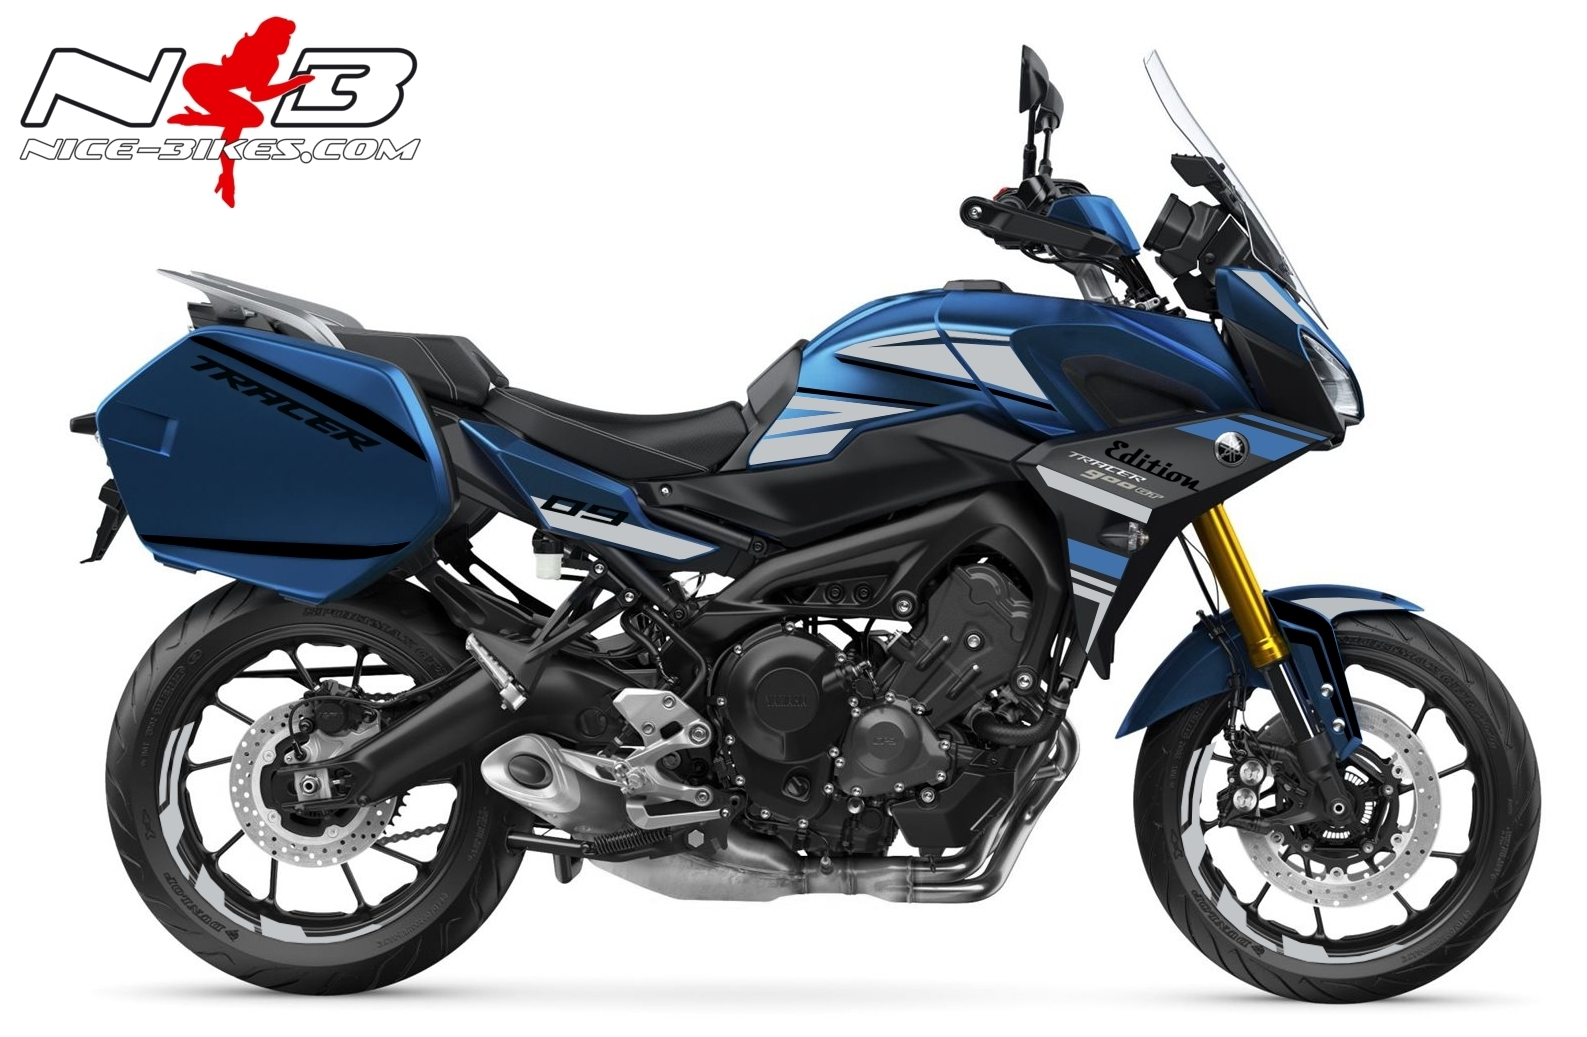 Foliendesign YAMAHA MT09 Tracer Bj. 2020 Racing Blue